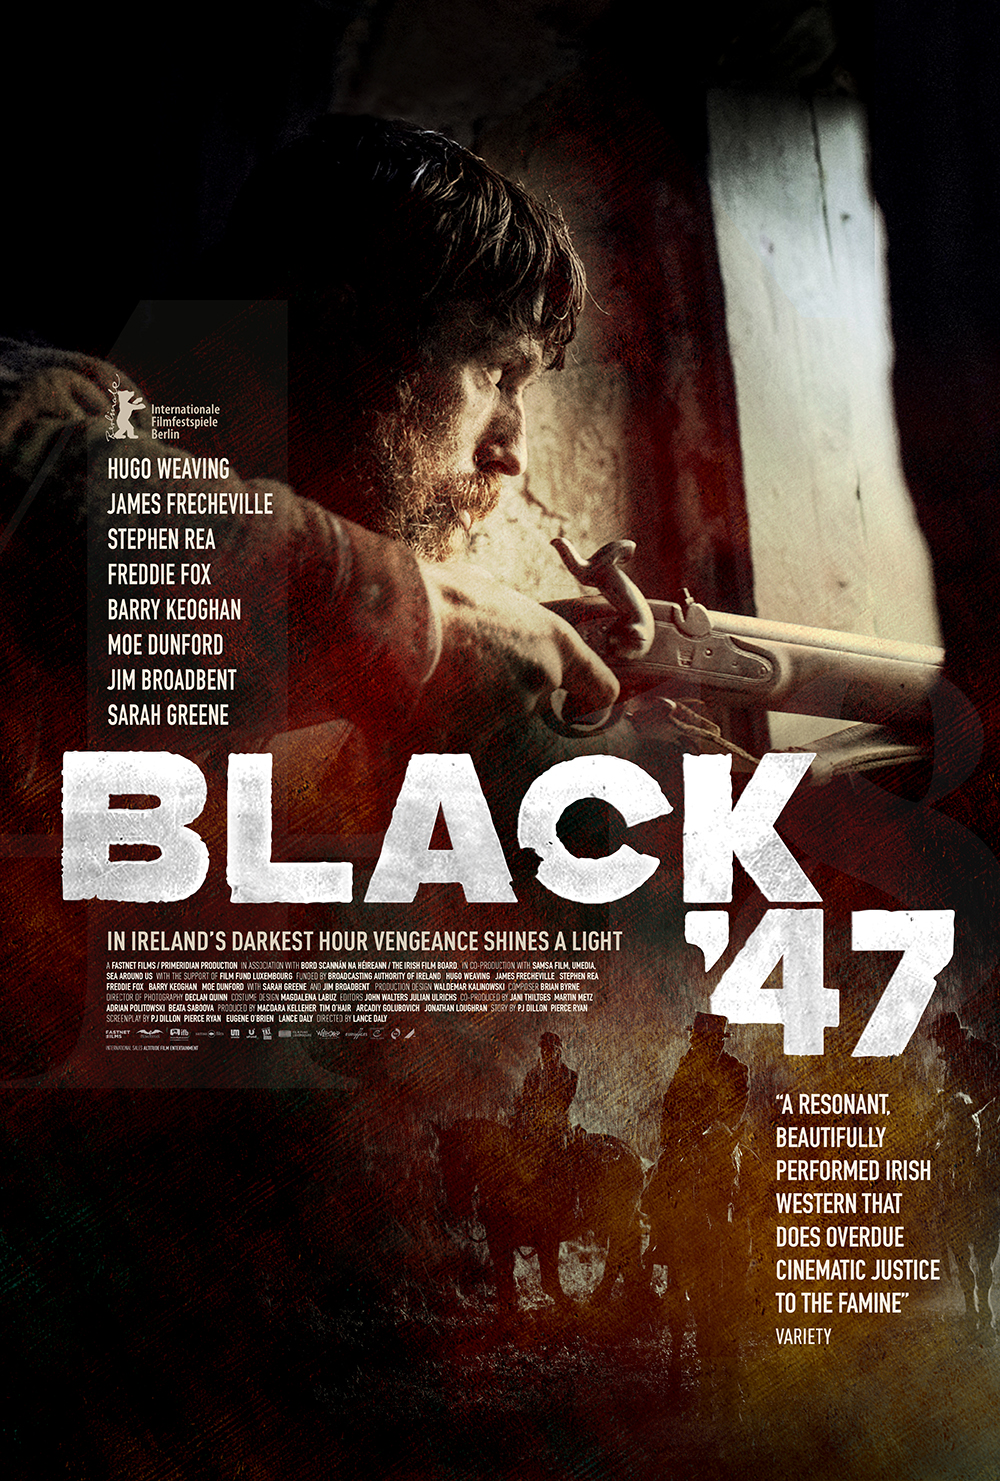 Irish action movie Black 47 gets Irish release date